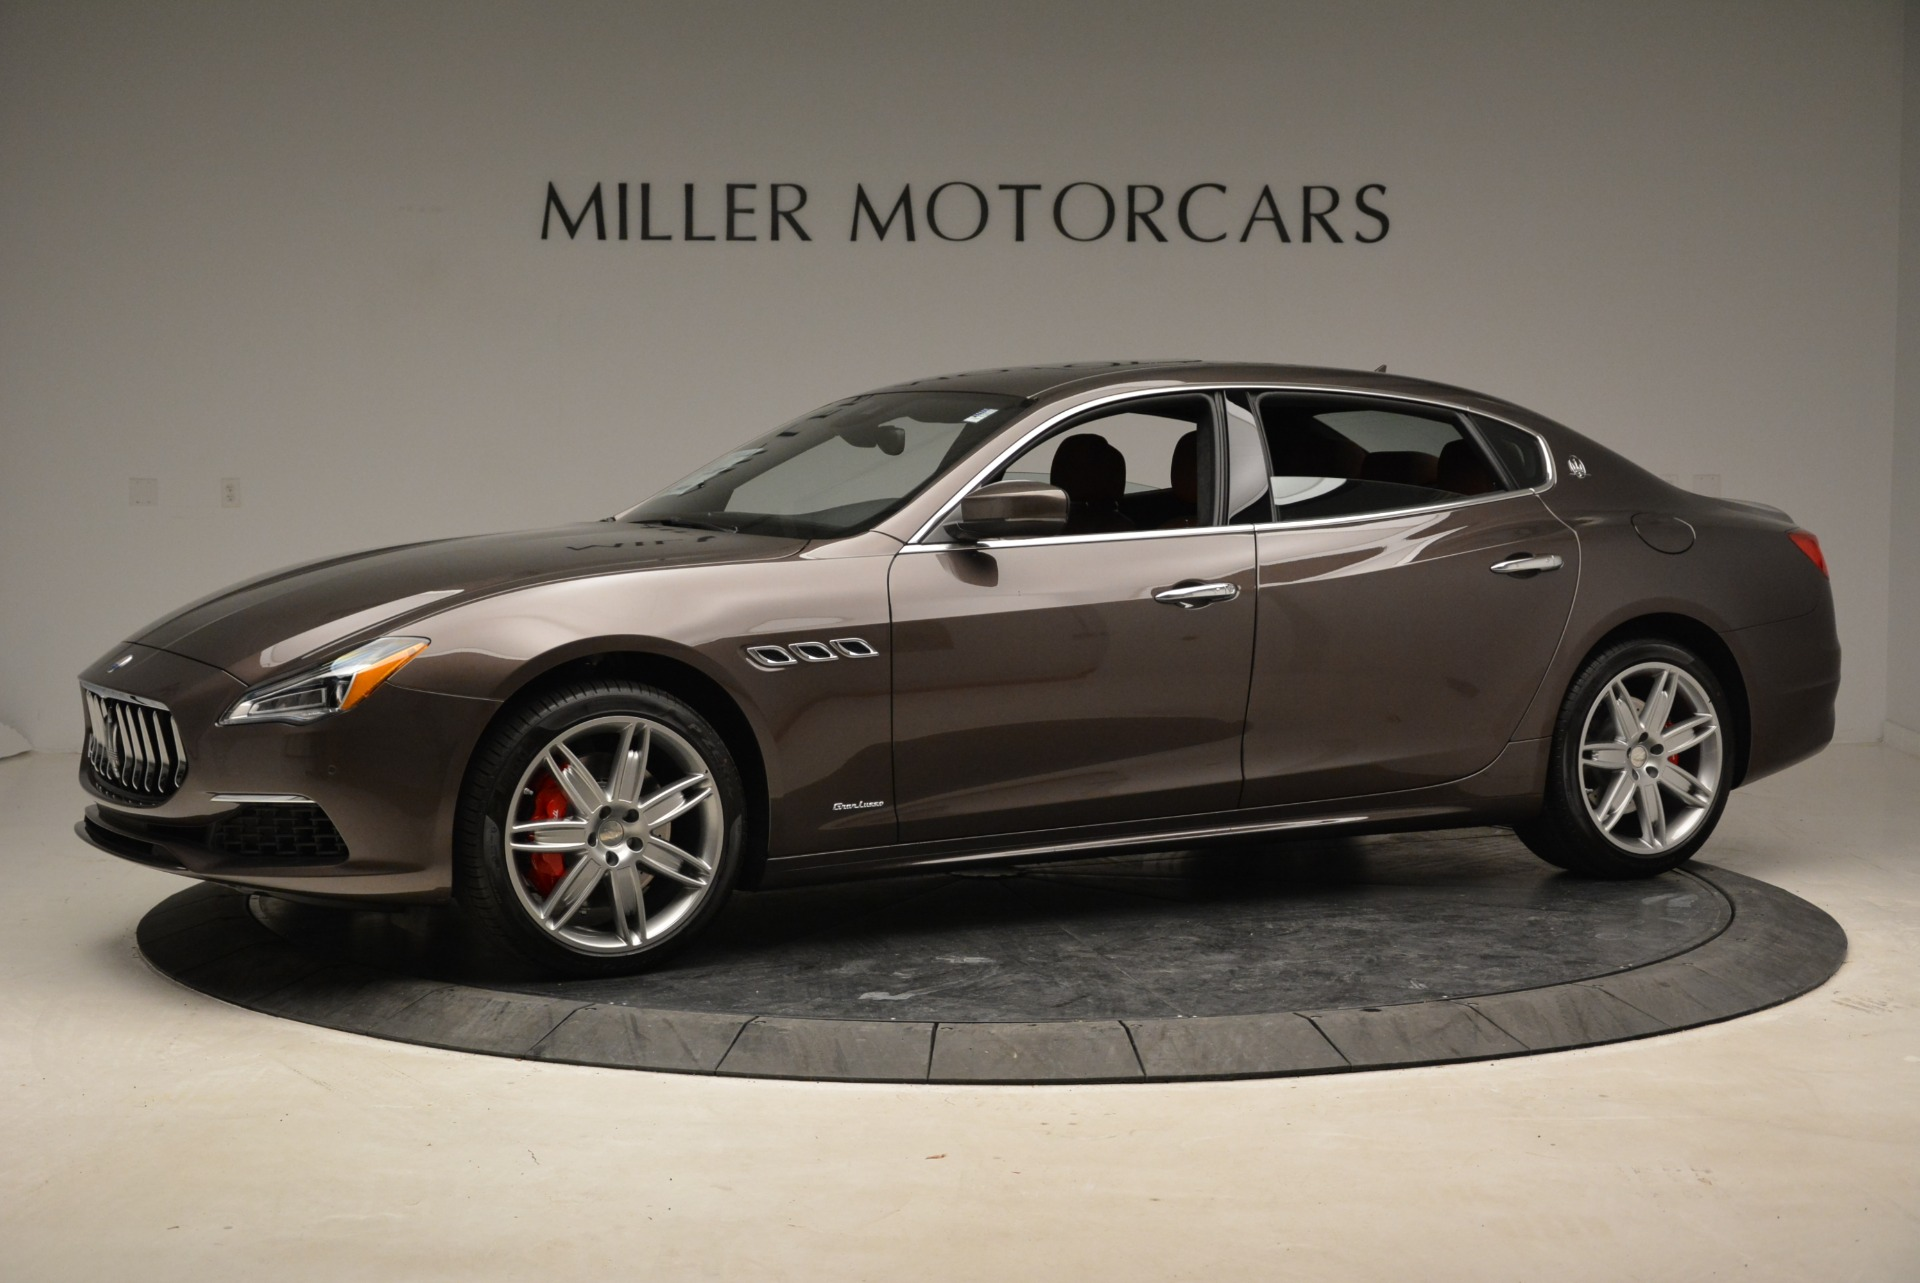 New 2018 Maserati Quattroporte S Q4 GranLusso For Sale In Greenwich, CT 1926_p3